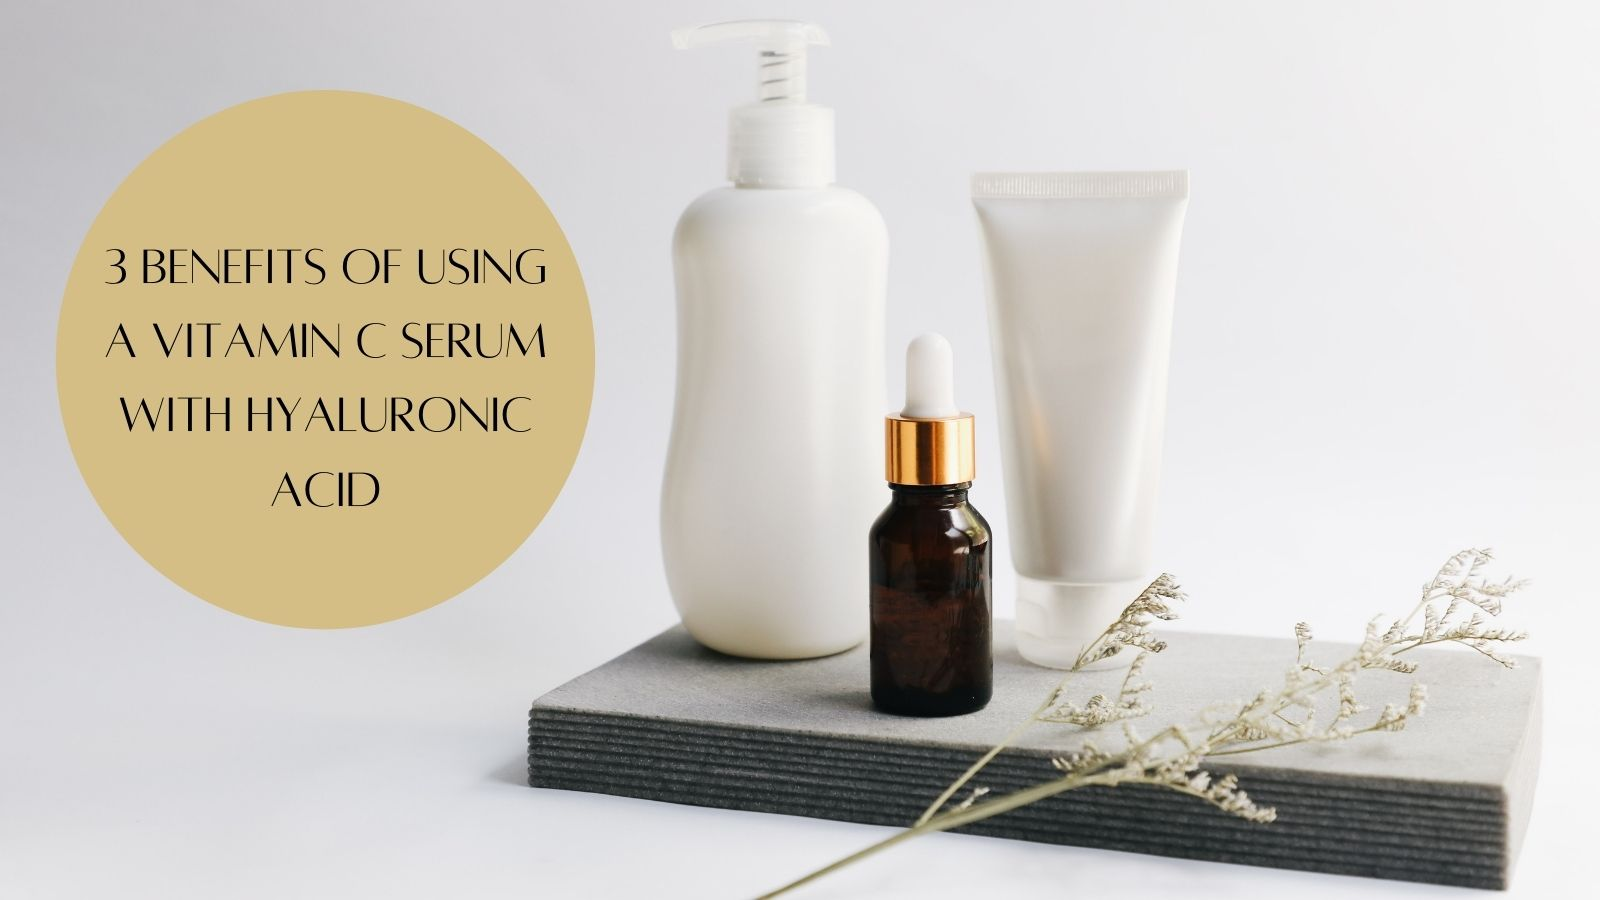 Vitamin C Serum With Hyaluronic Acid - Skincare Bottle